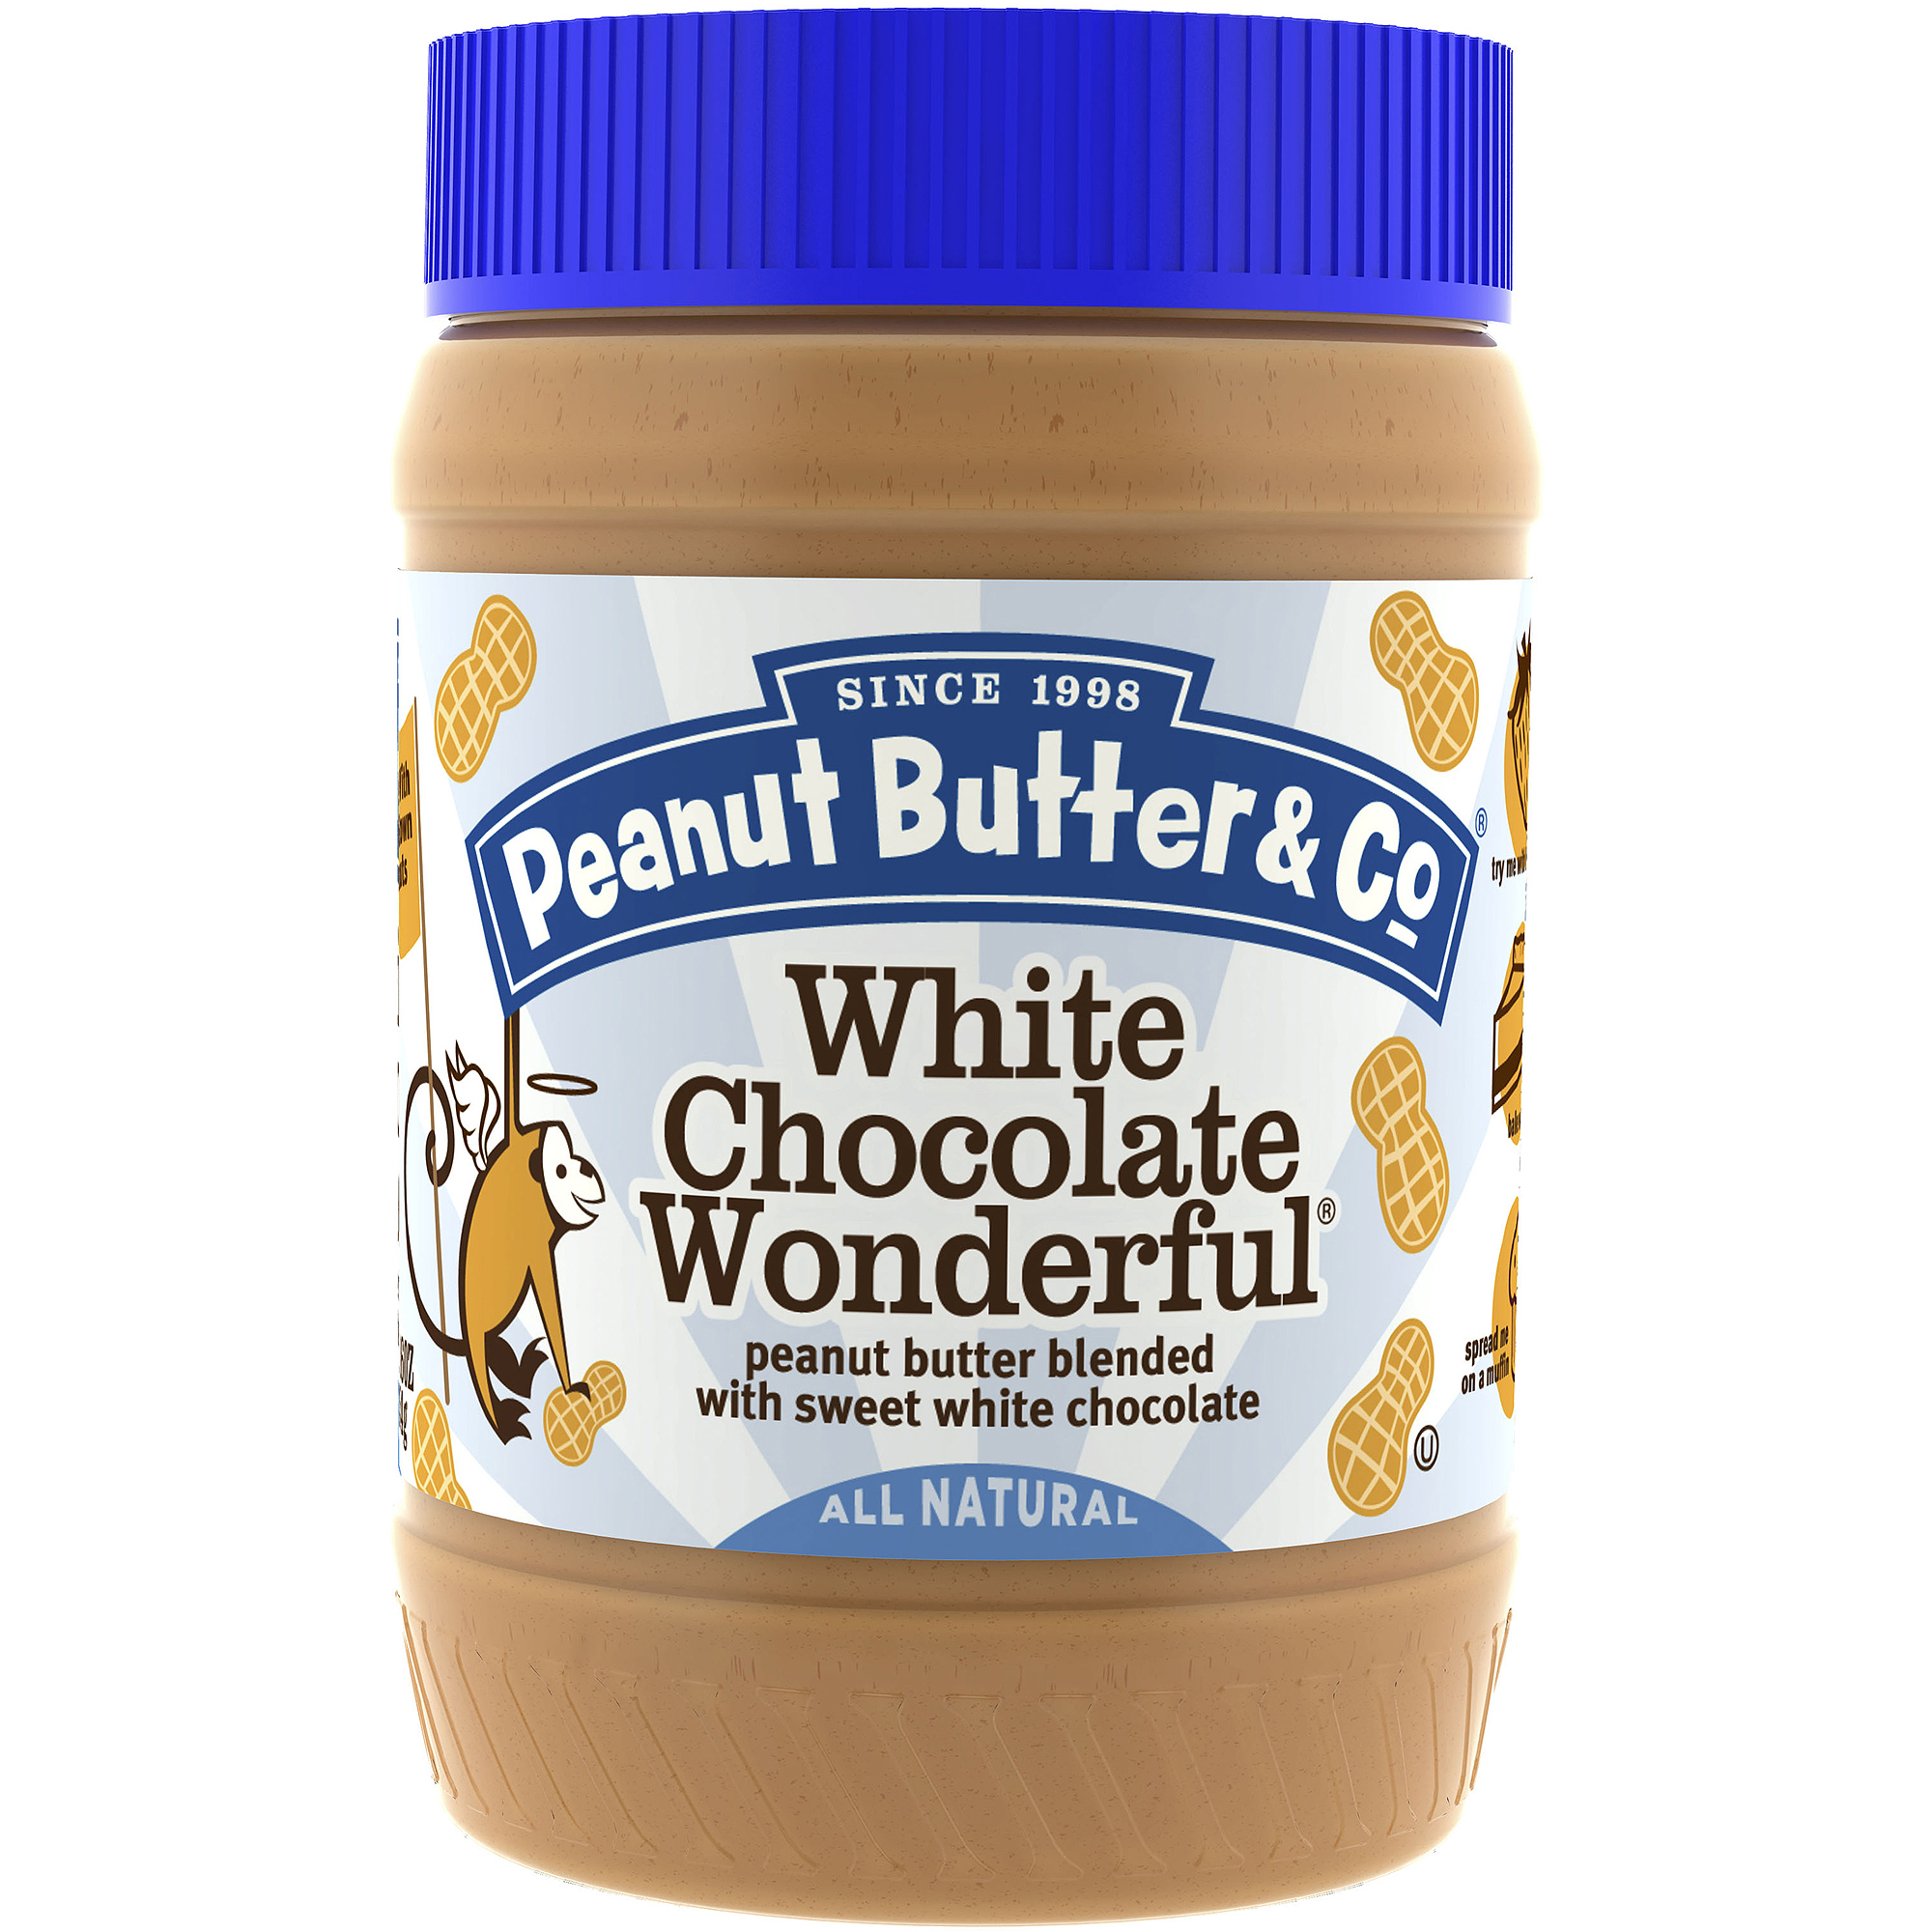 Peanut Butter & Co.: White Chocolate Wonderful Peanut Butter, 16 Oz